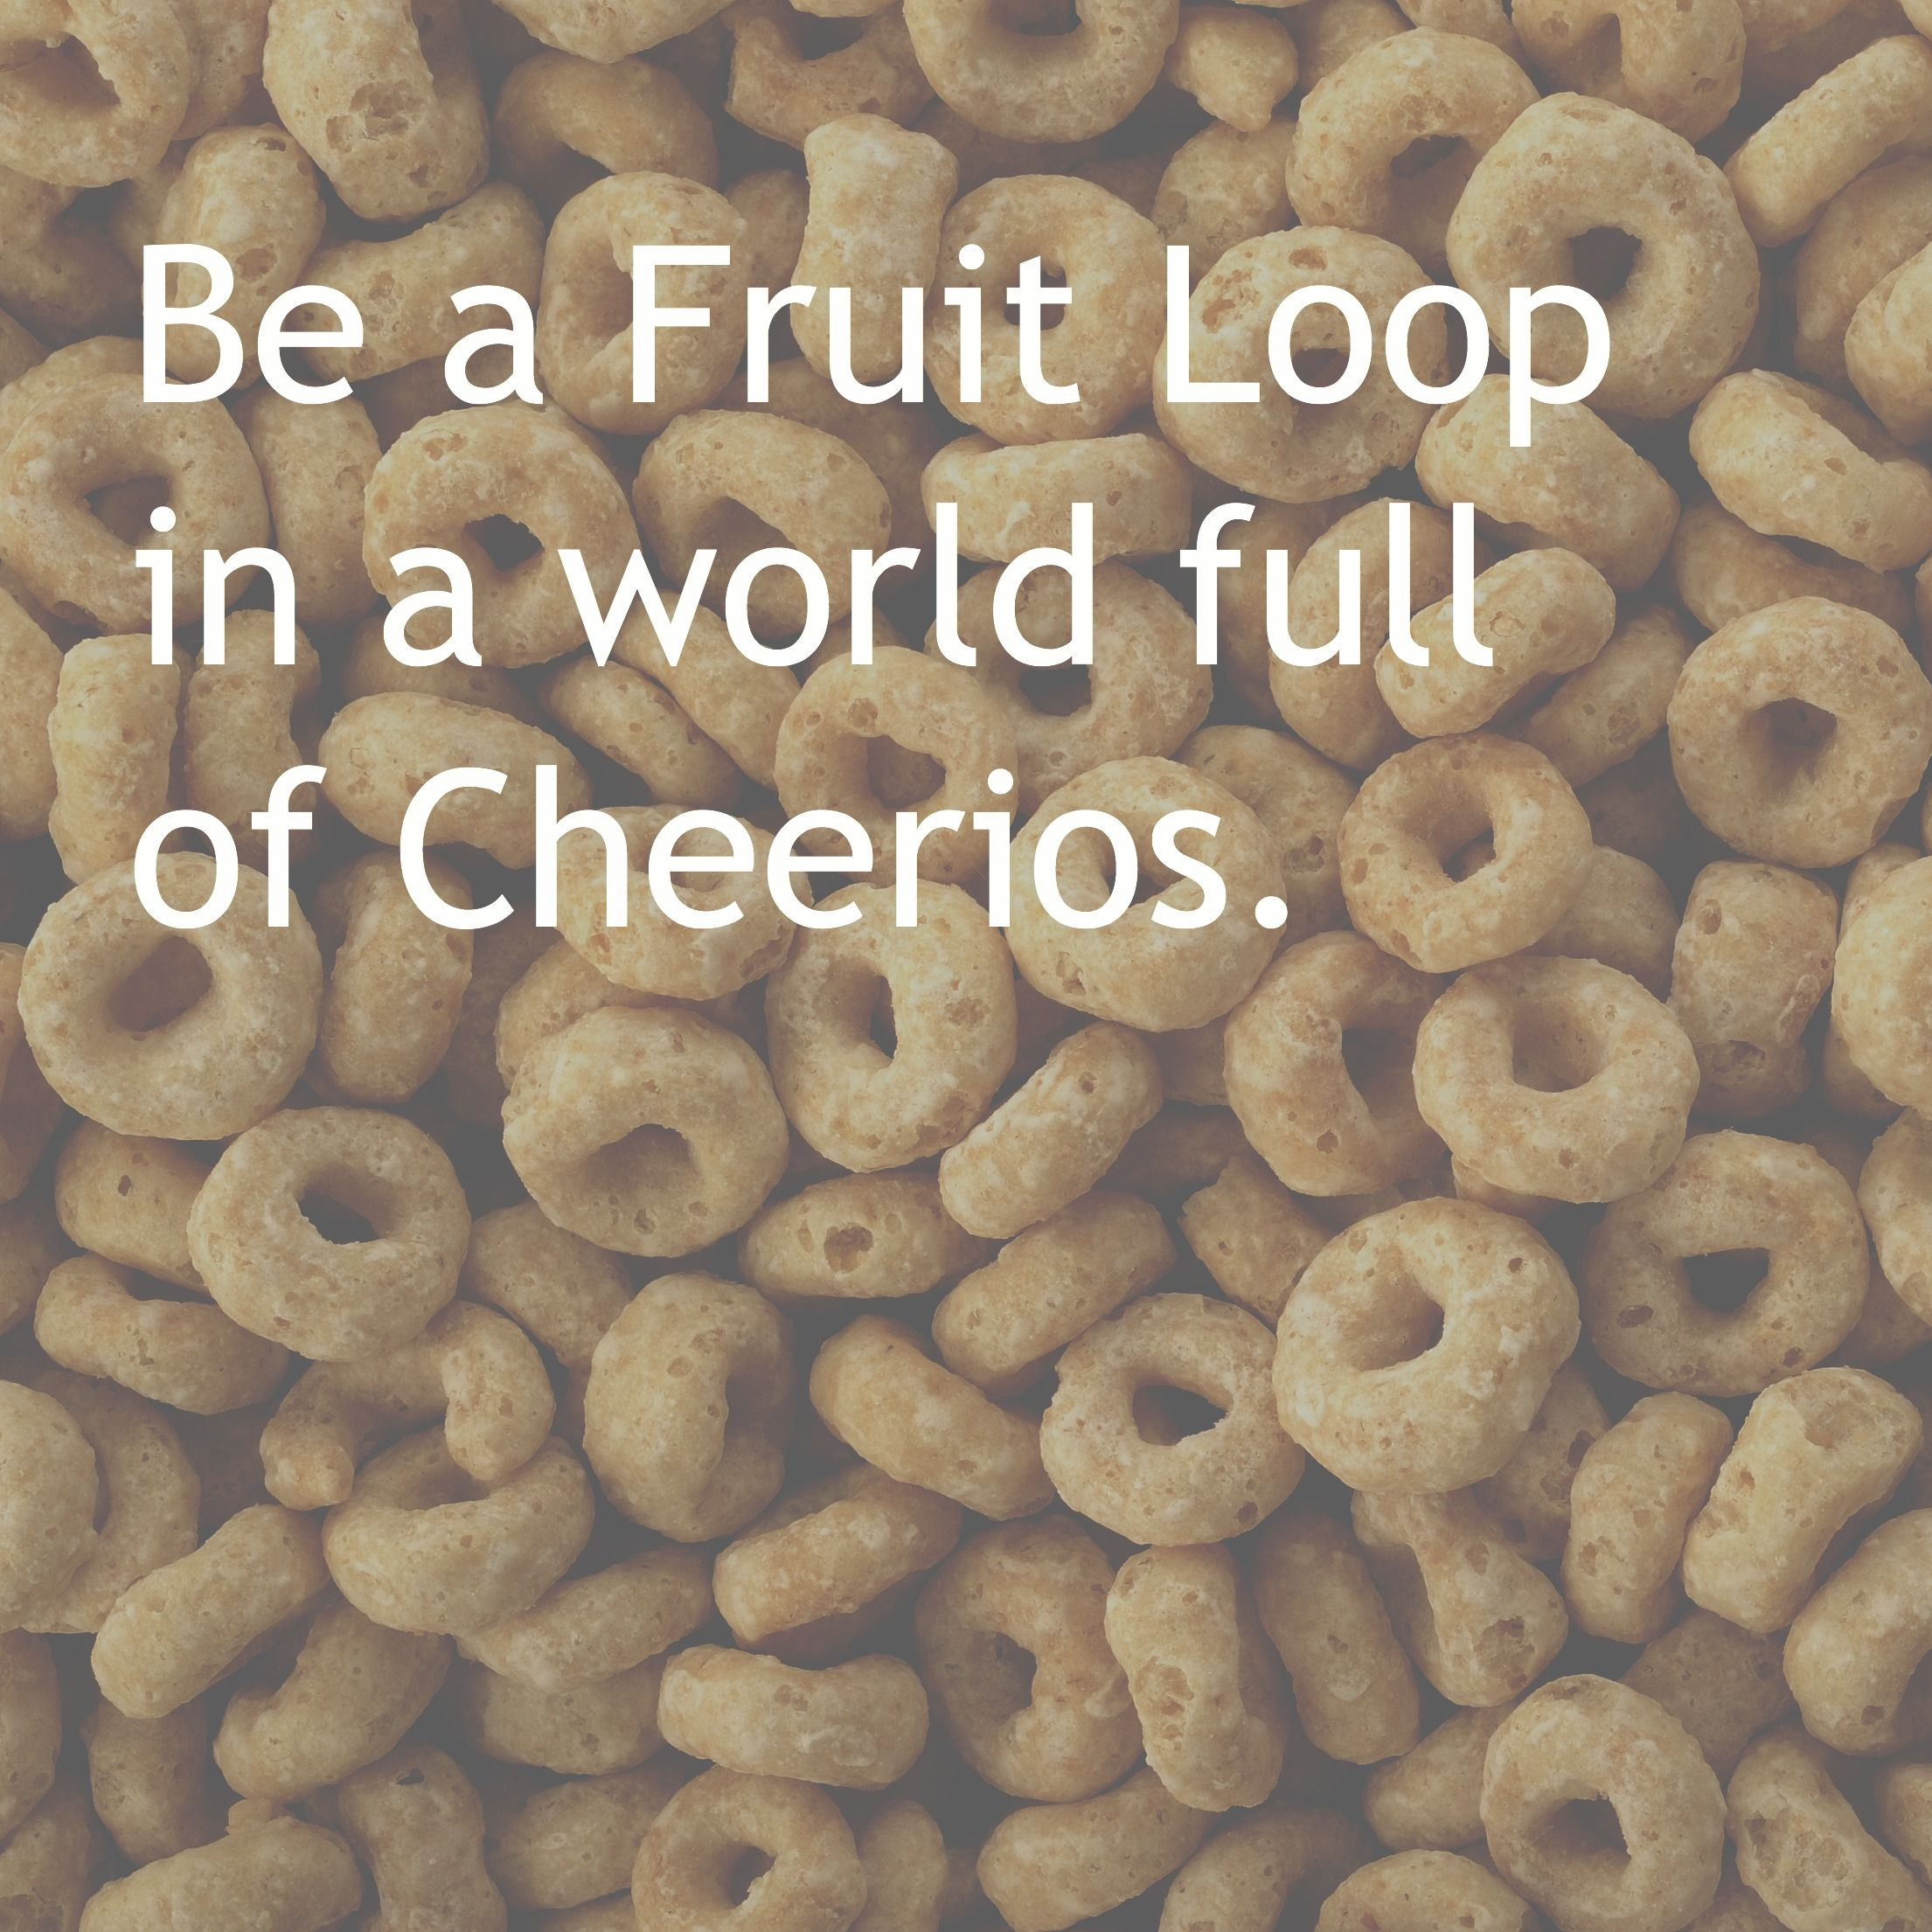 Be A Fruit Loop In World Full Of Cheerios Quote Beyou On The Go Pink Cheerio